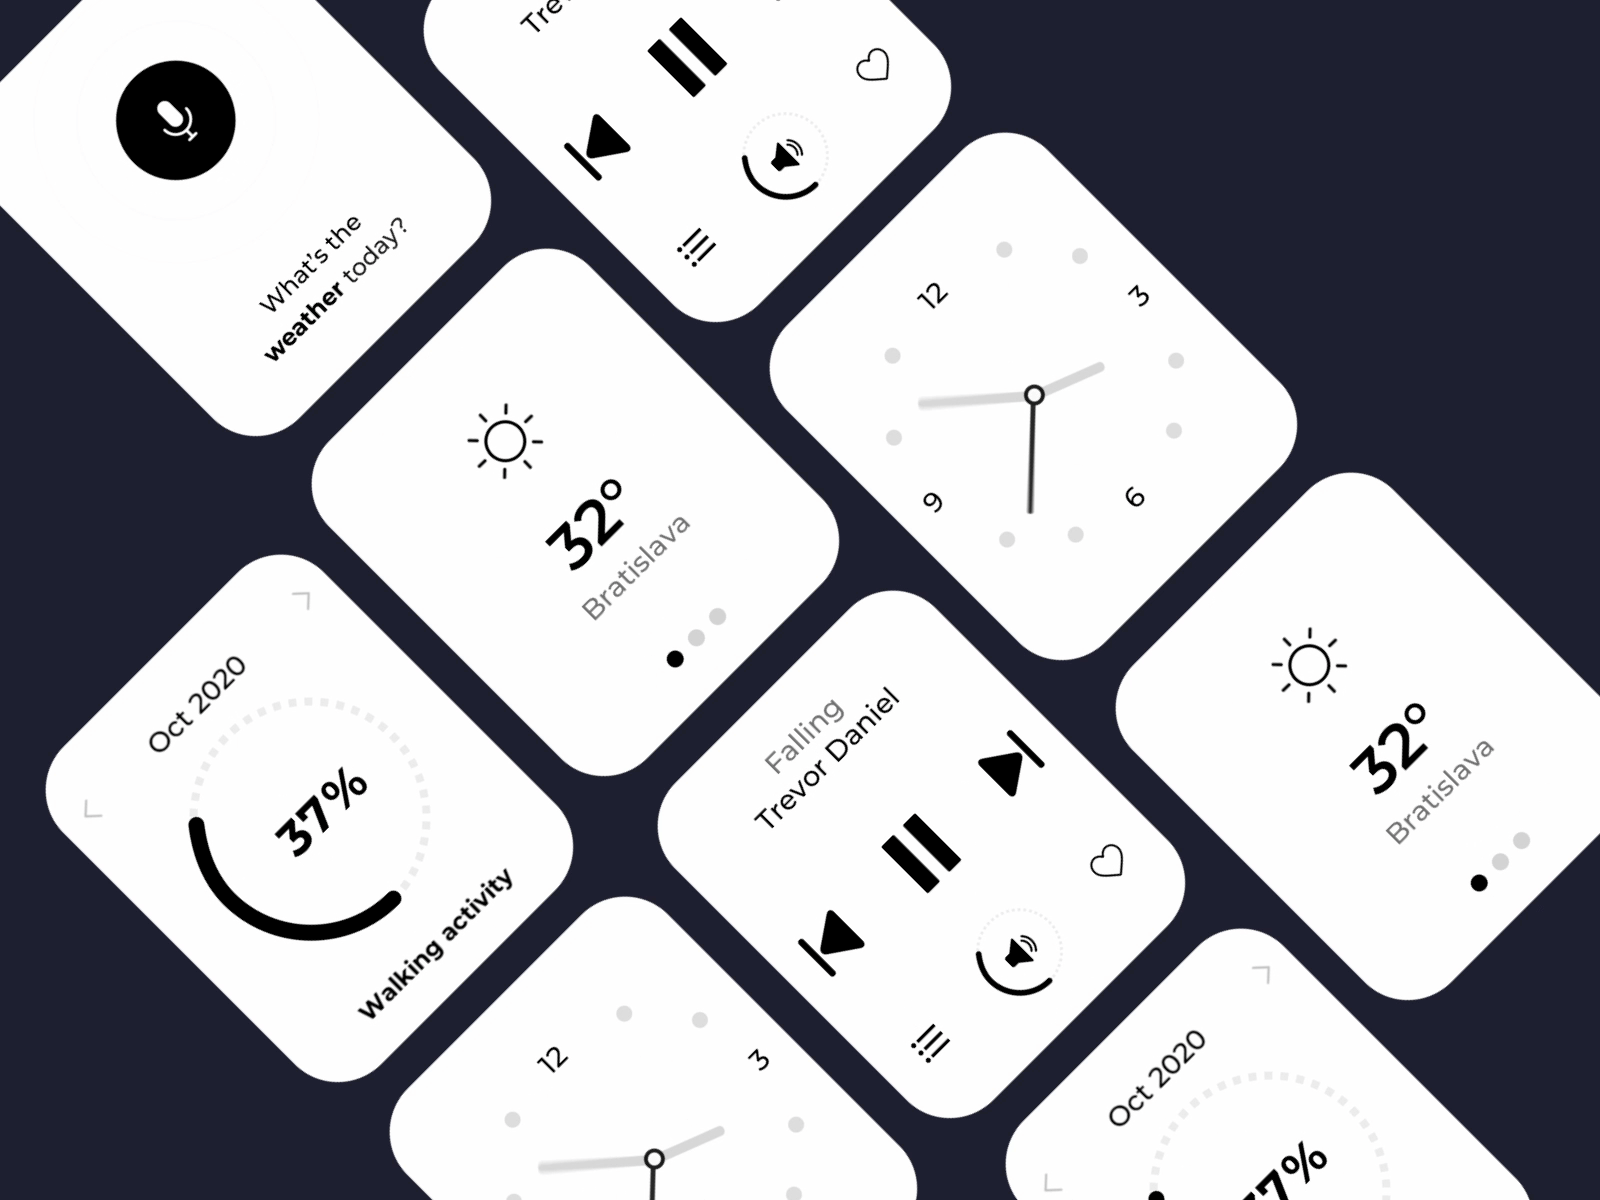 Apple Watch UI Kit cover image